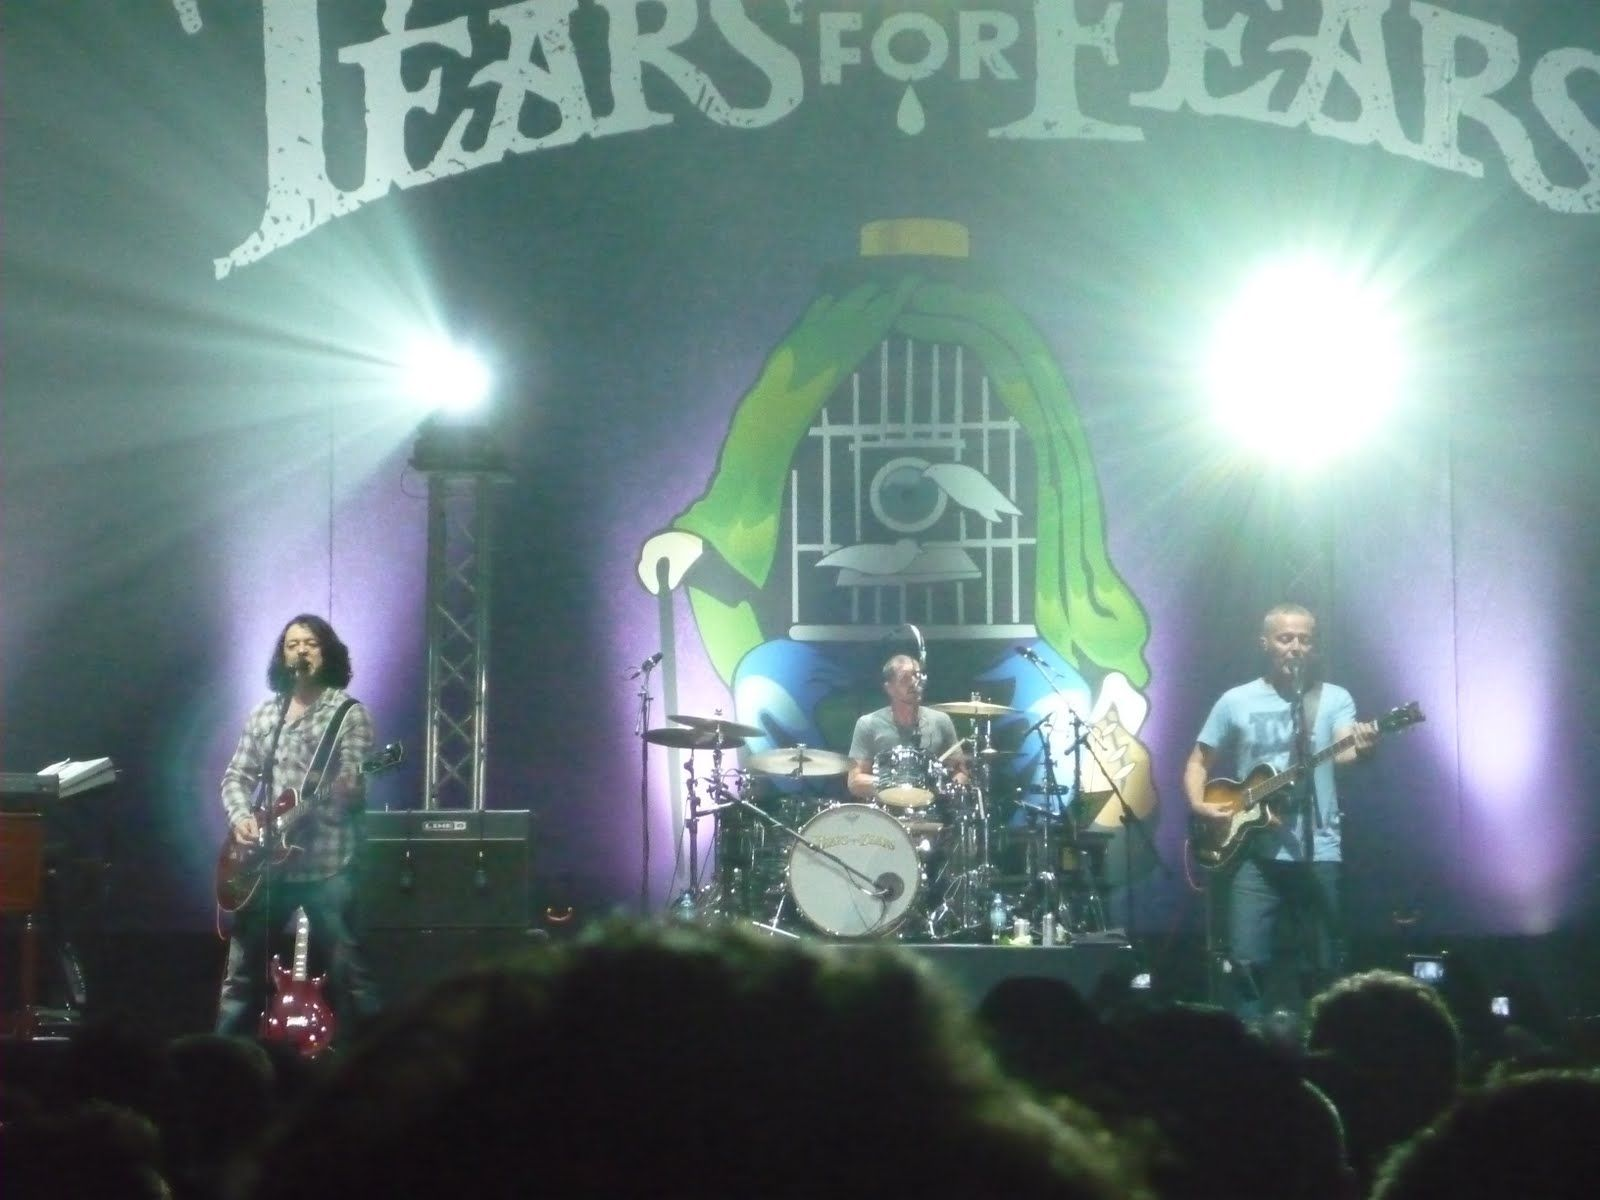 Tears for fears casino rama vgt crazy cherry slot machine